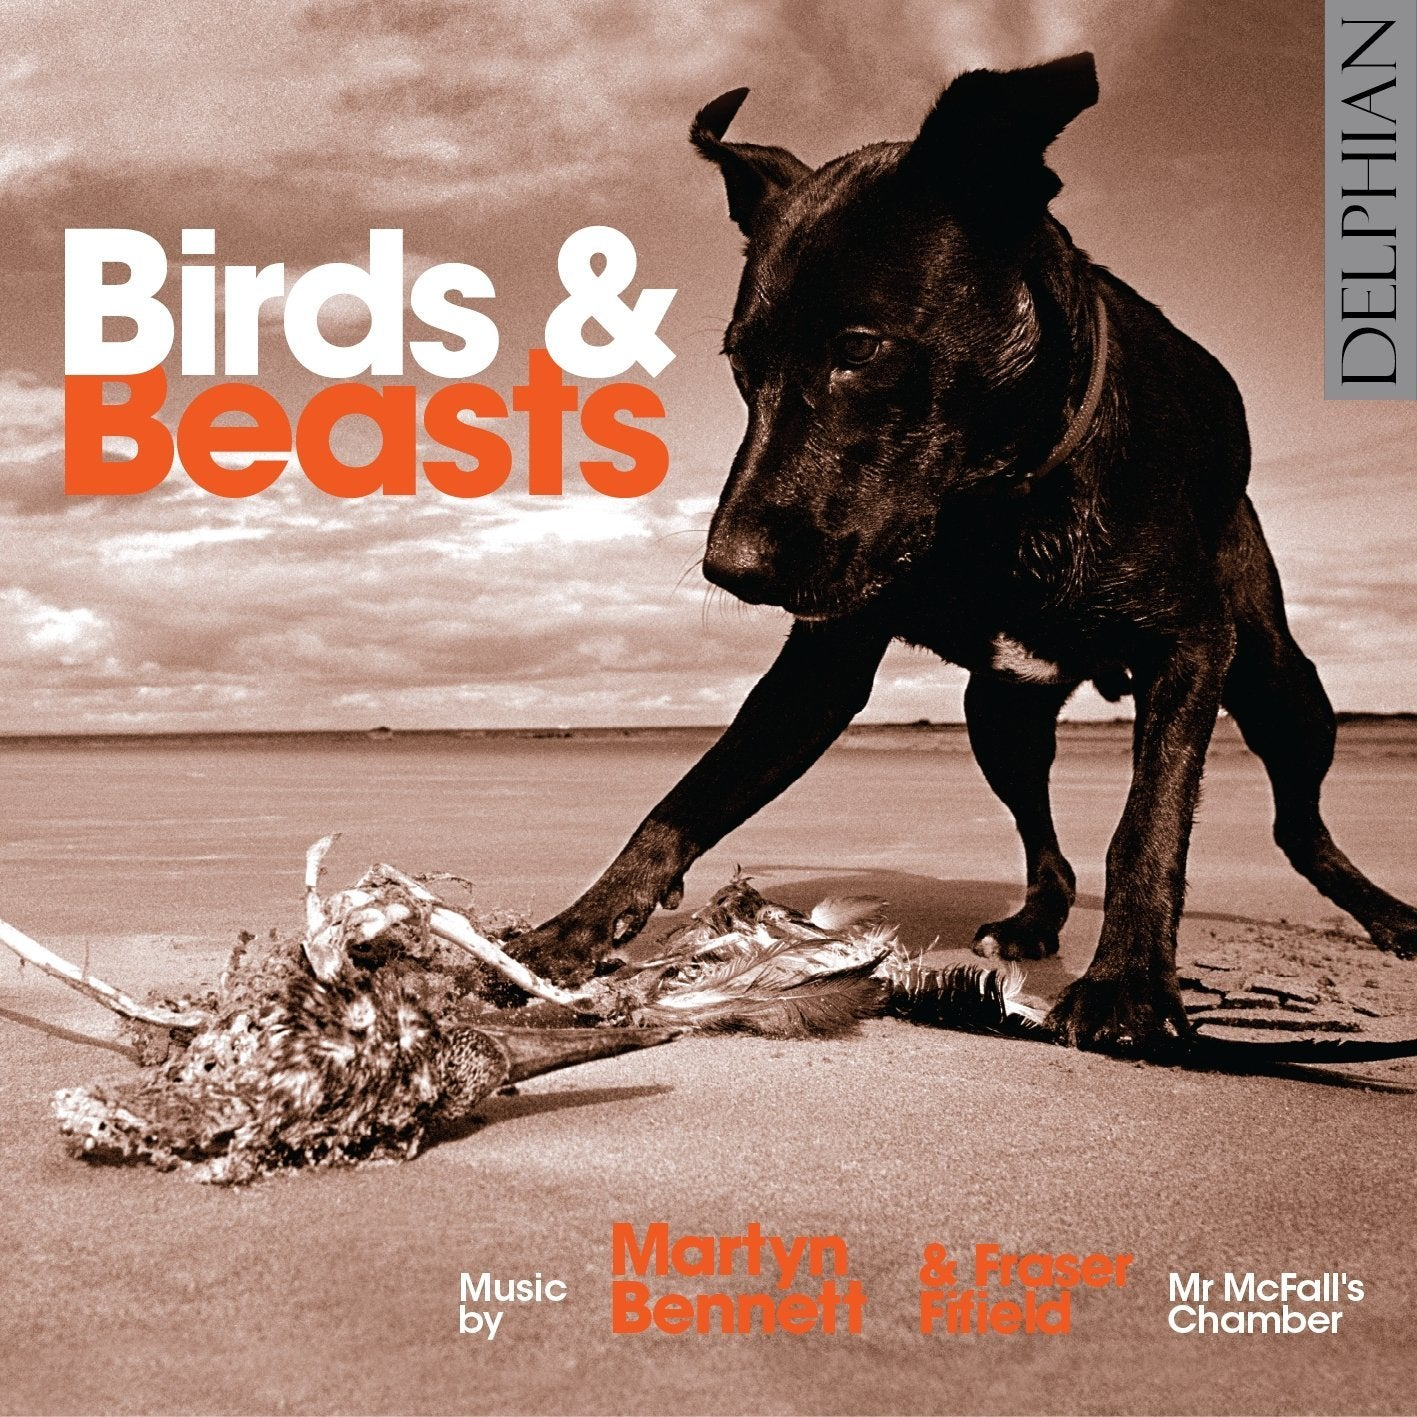 Birds & Beasts: music by Martyn Bennett and Fraser Fifield CD Delphian Records